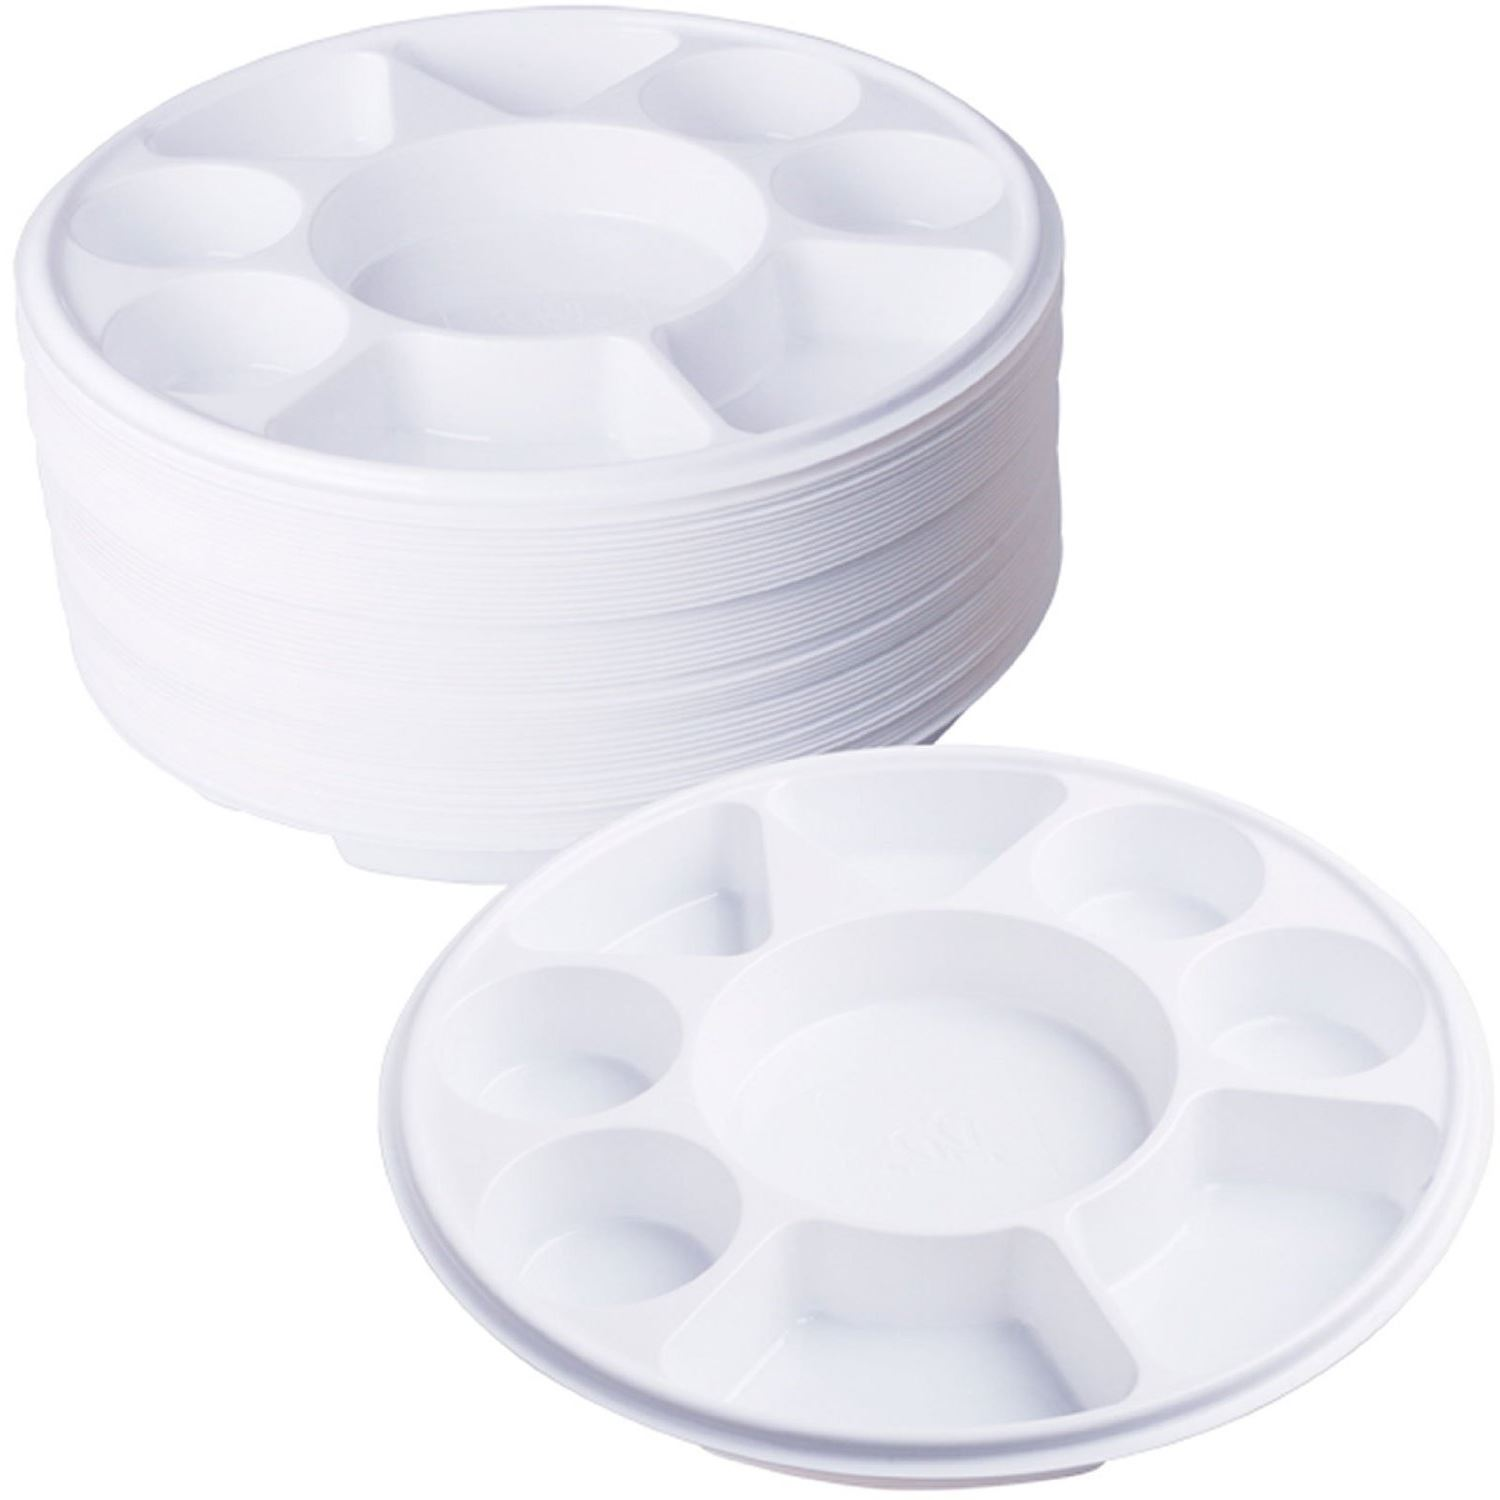 Compartment Plastic Dinner Plates 50 pcs Party Home Food Disposable ...